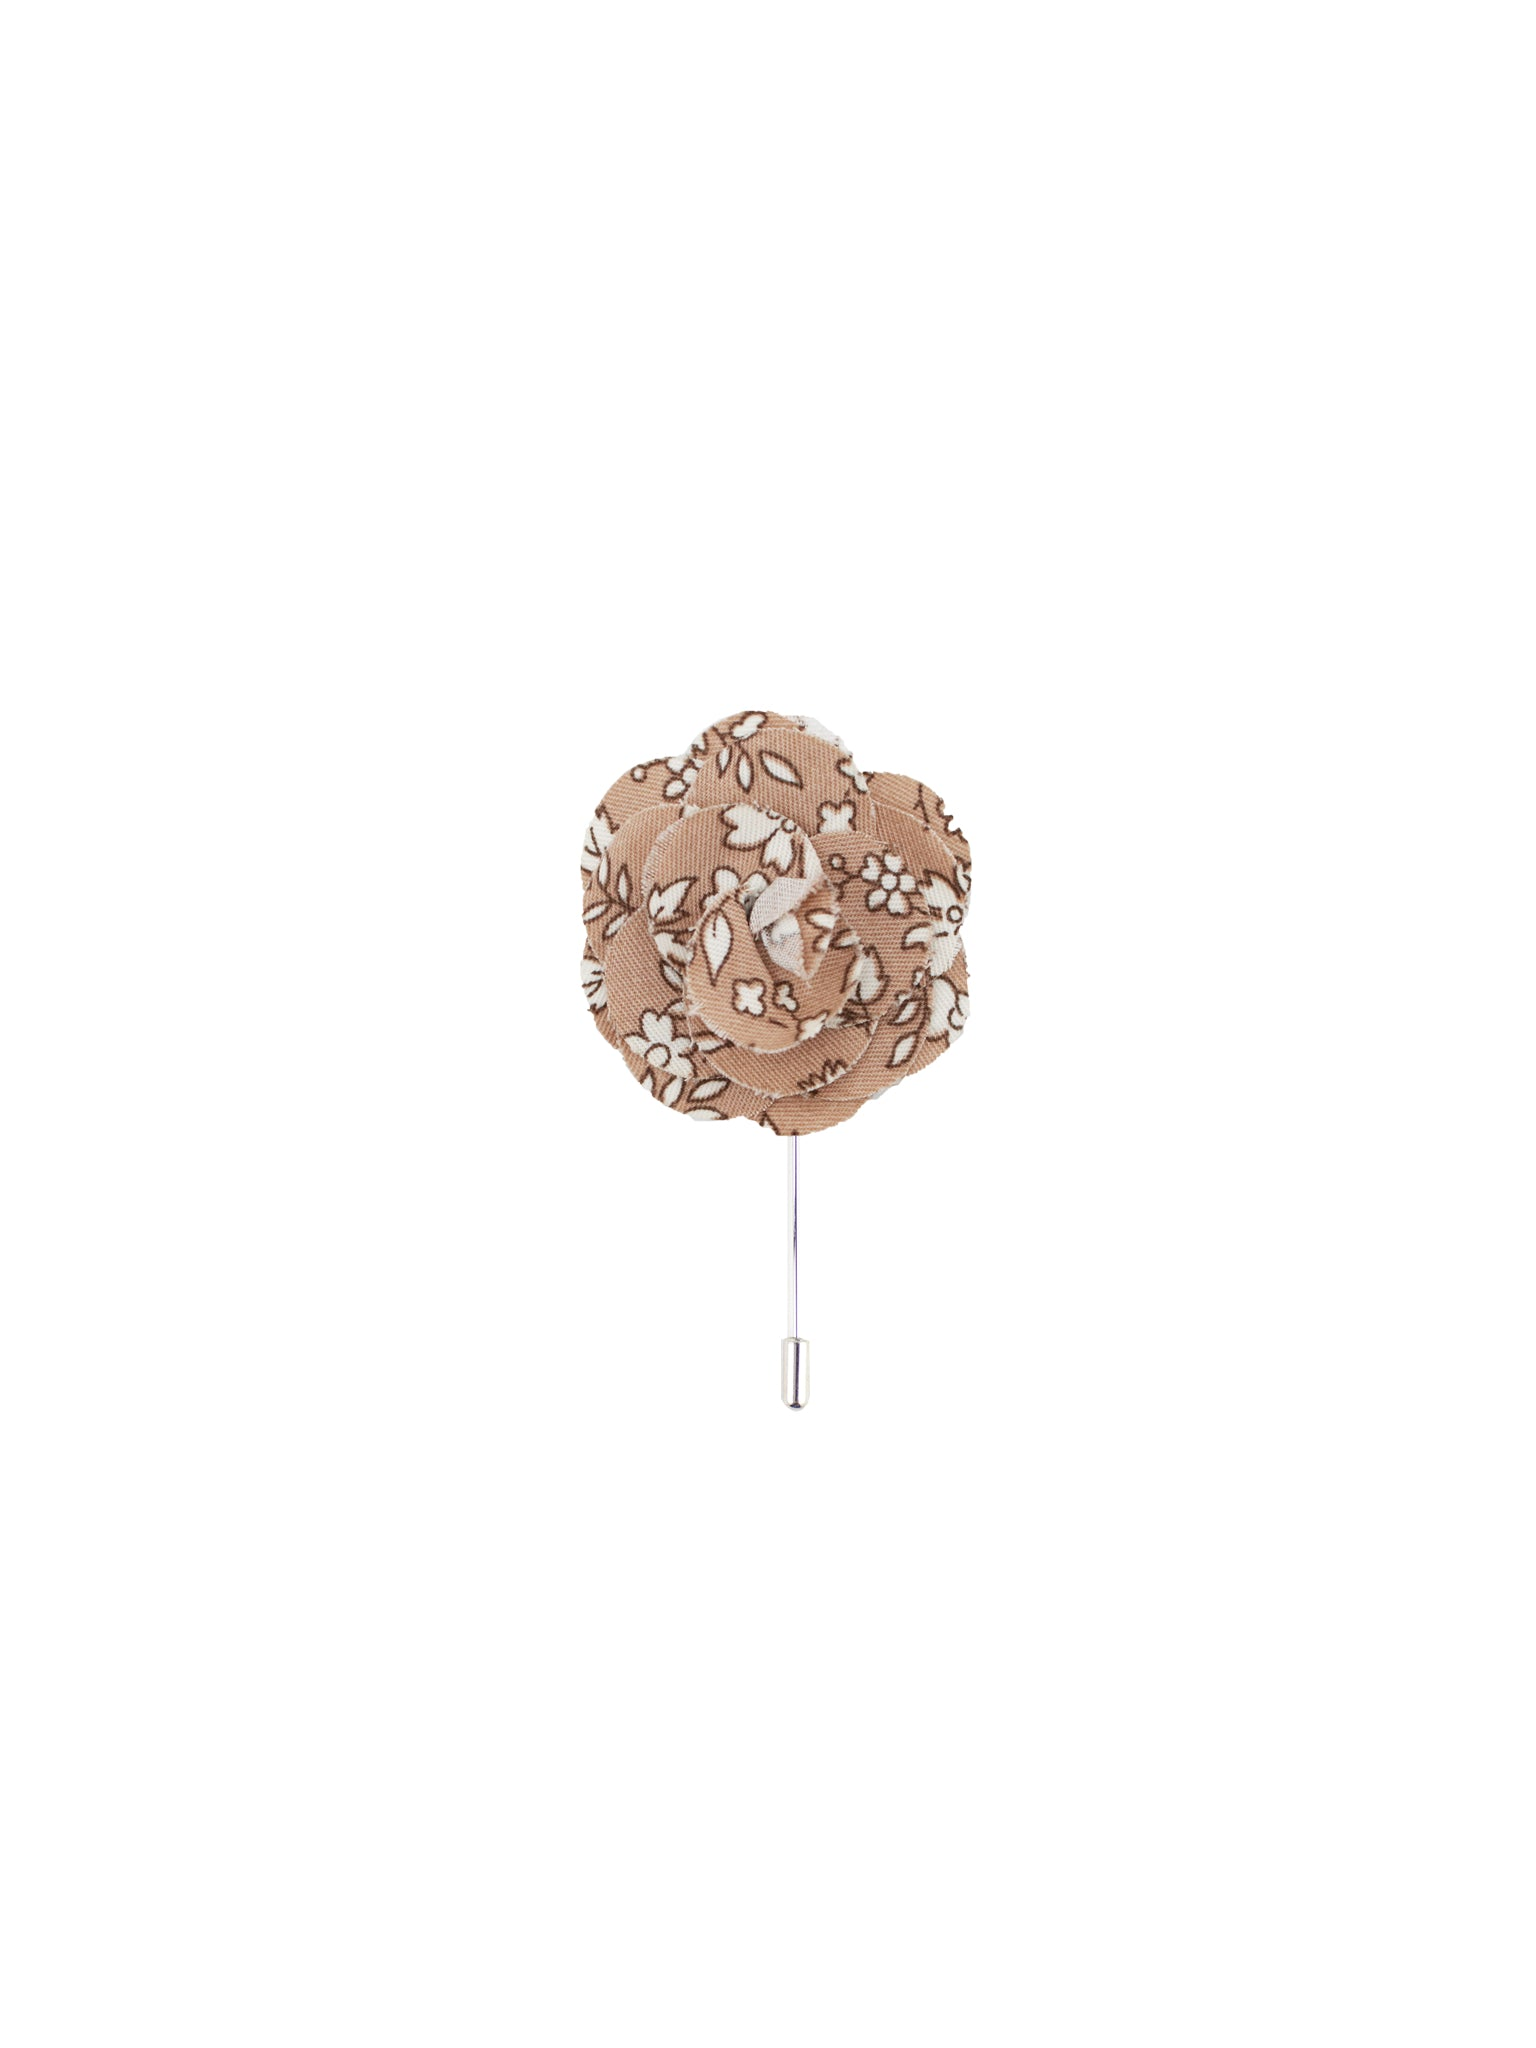 Beige & White Floral Lapel Pin